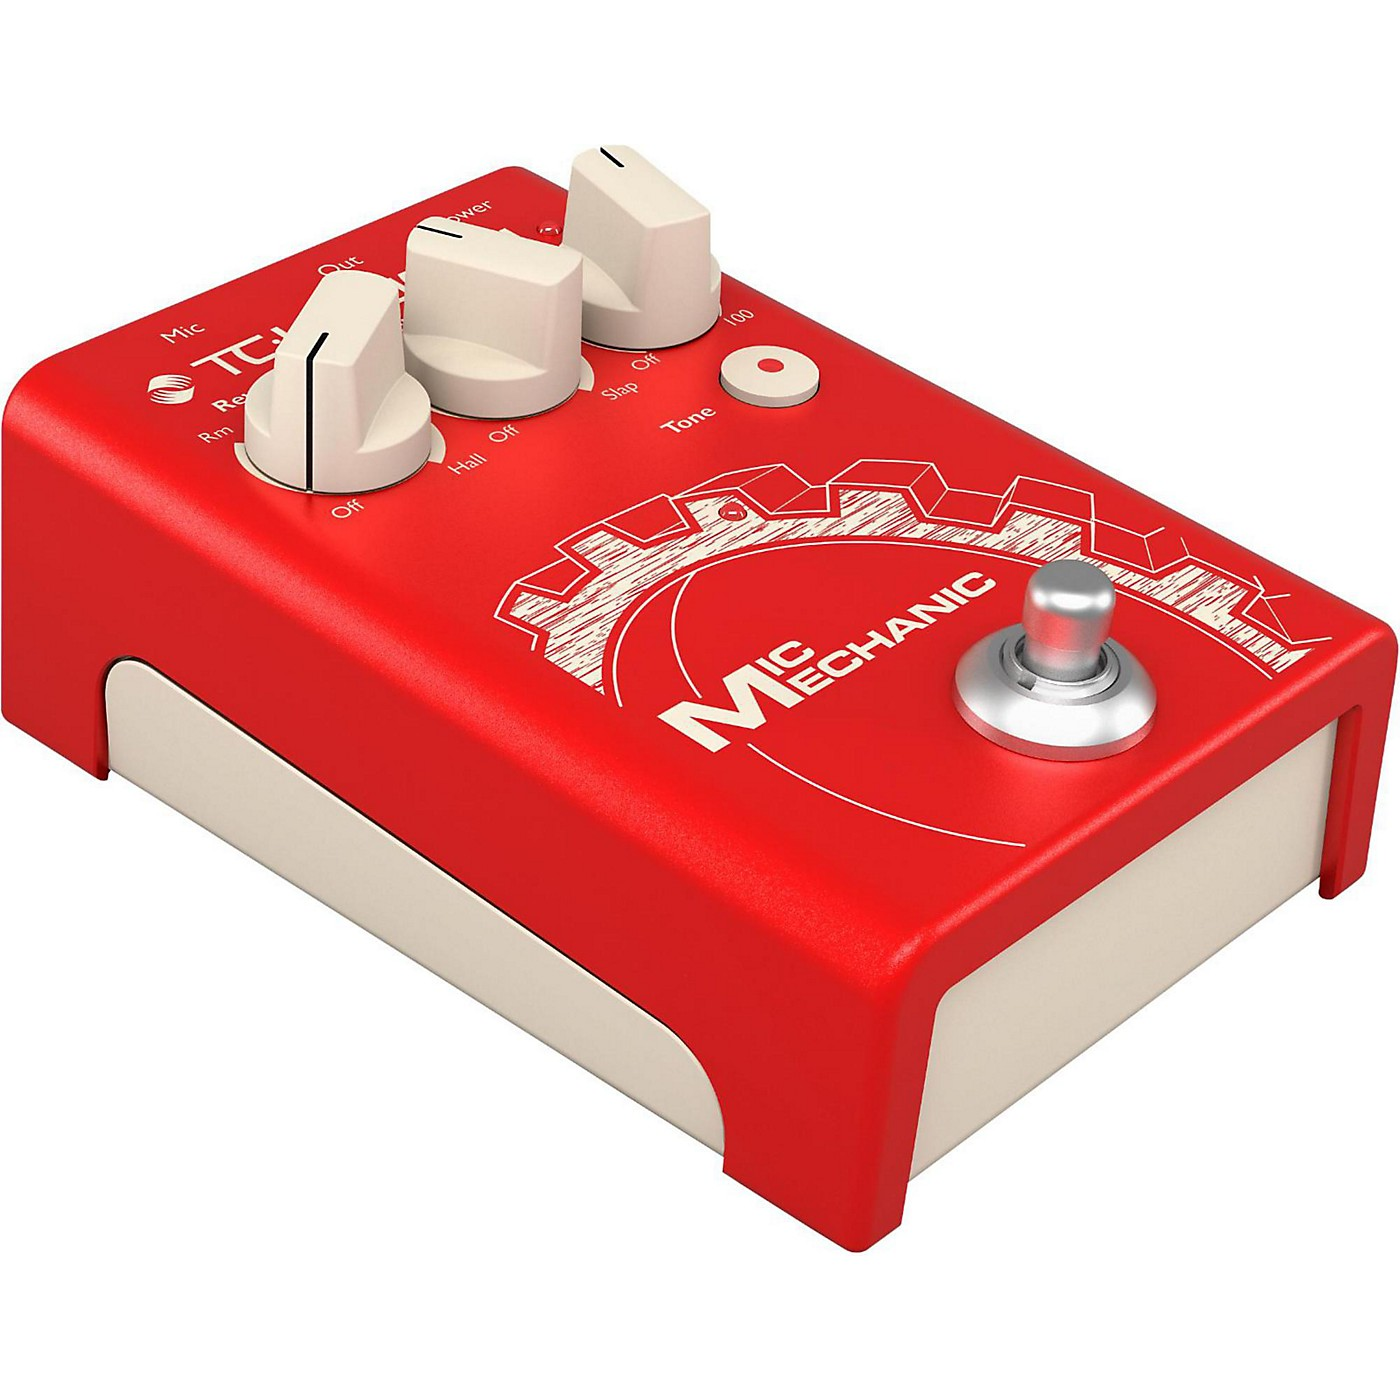 TC Helicon TC Helicon VoiceTone Mic Mechanic 2 Reverb, Delay, & Pitch Correction Pedal thumbnail